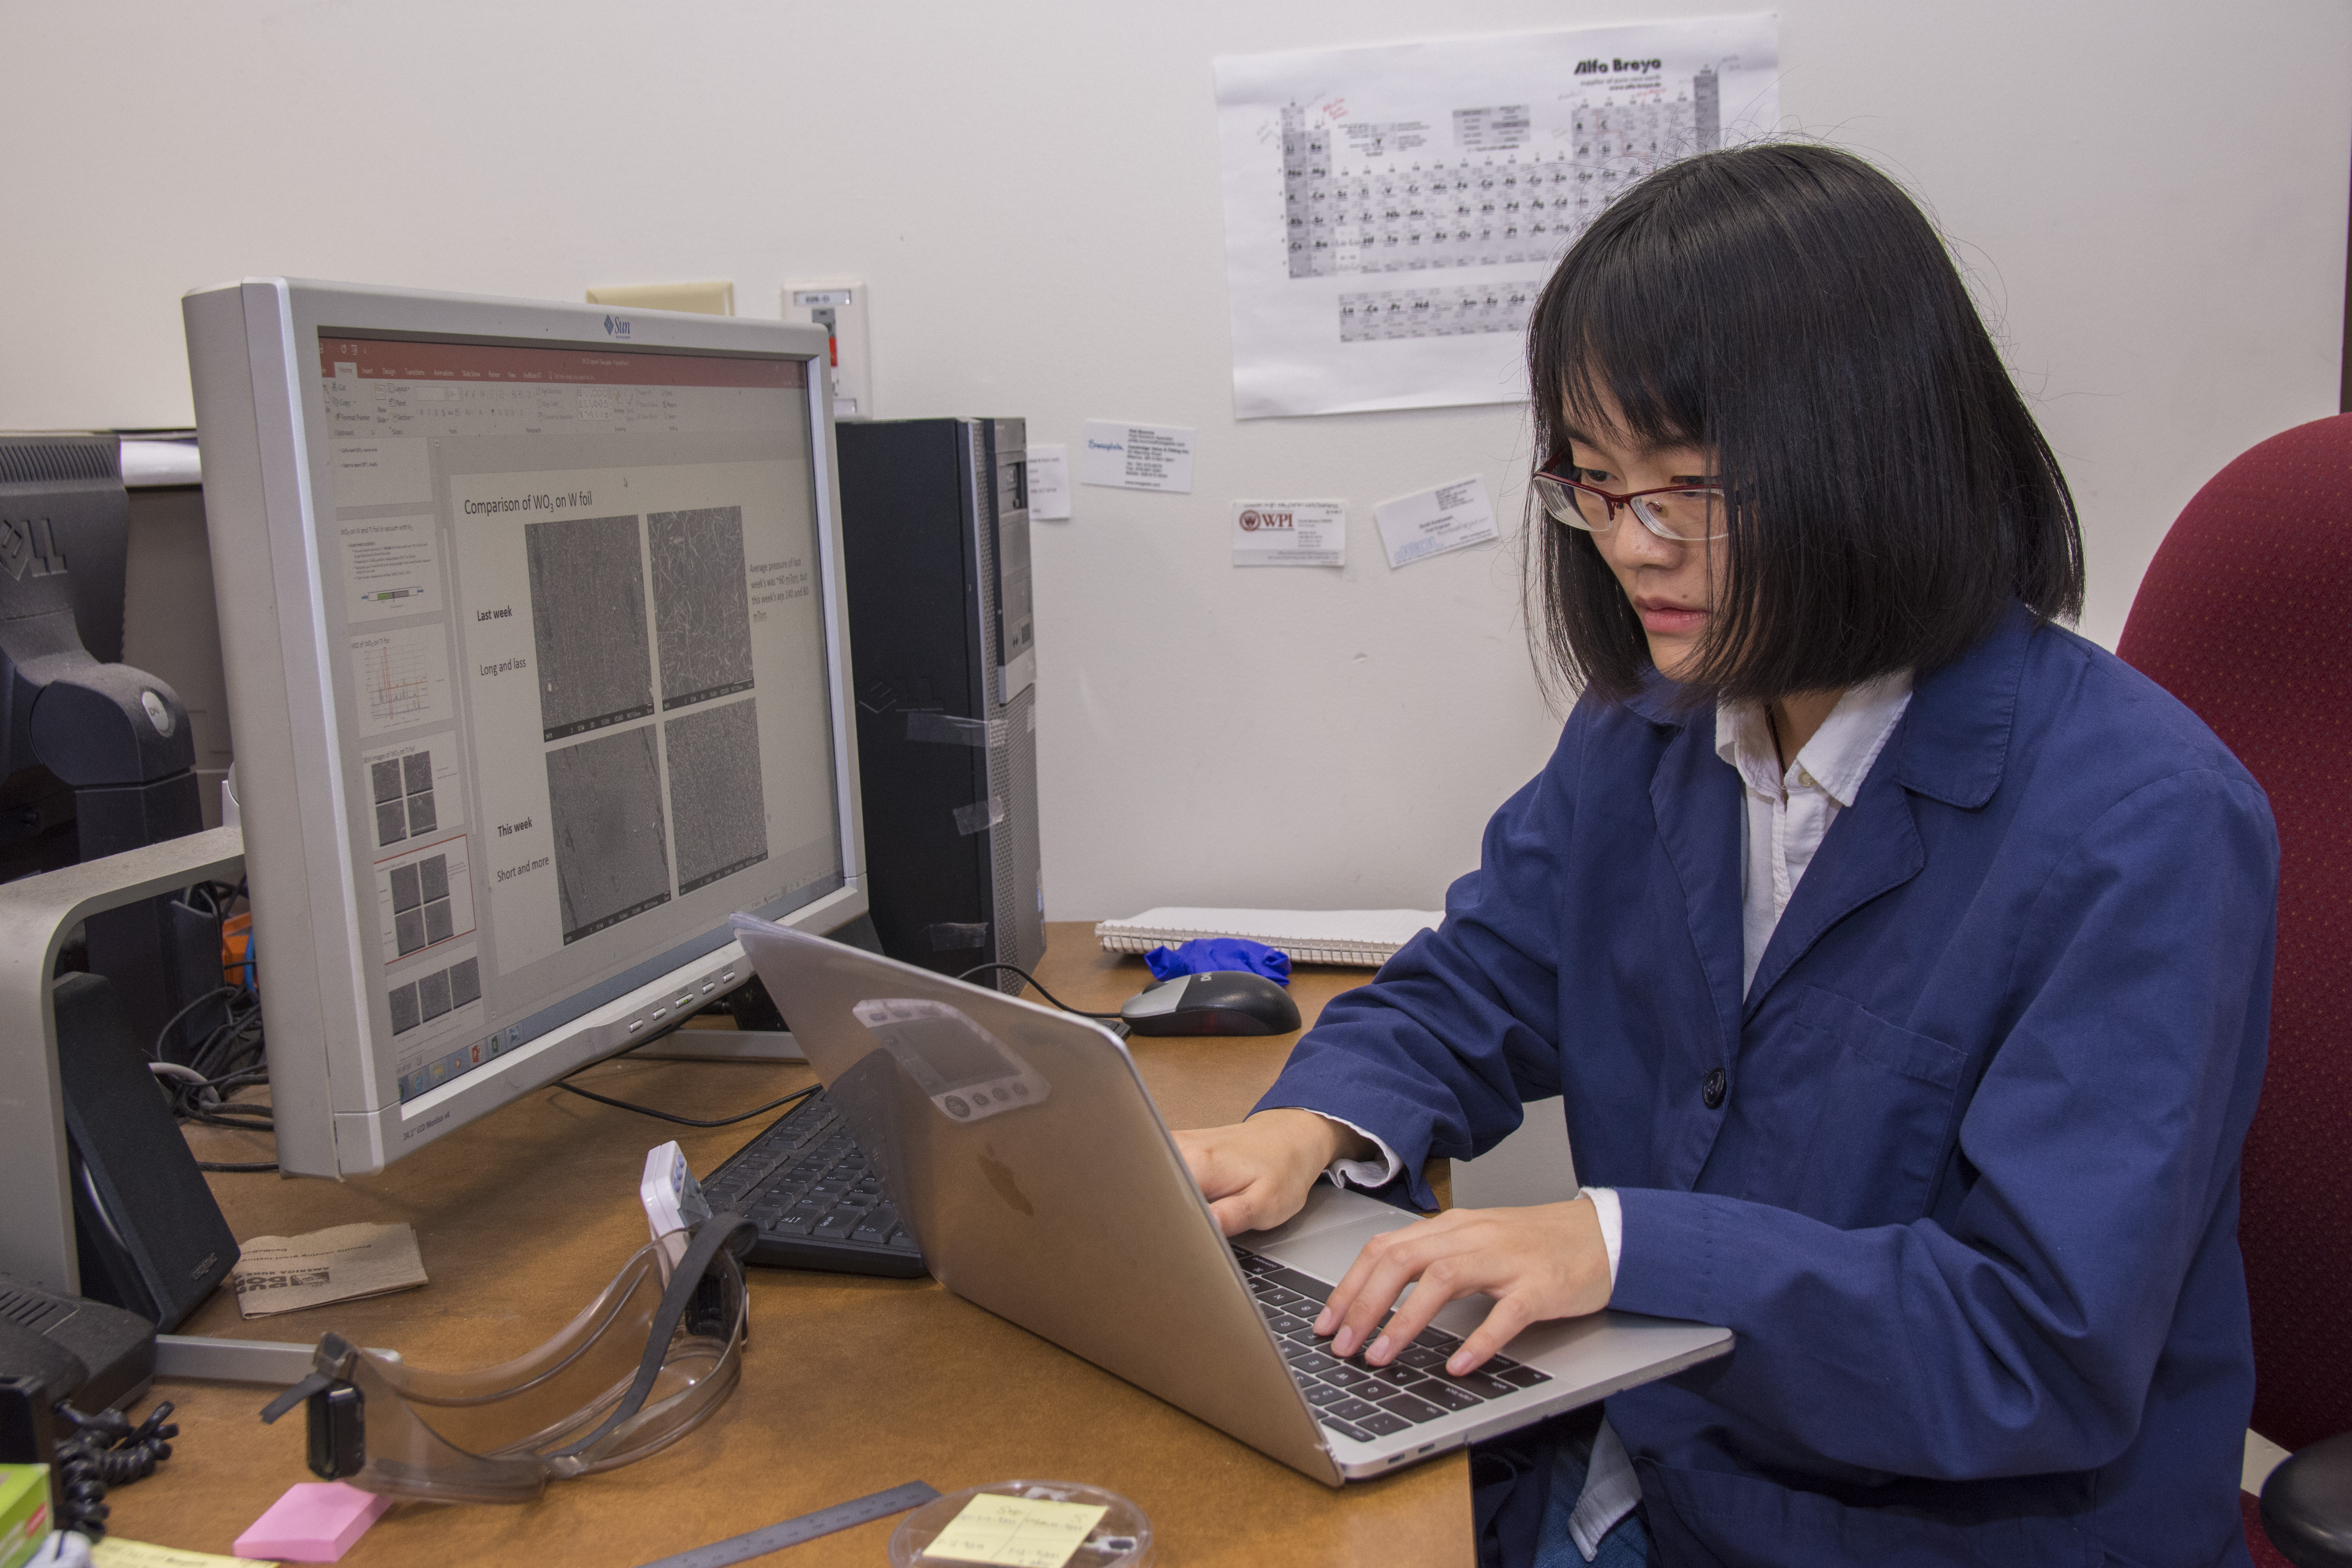 PhD student Tao Yan works at a labtop while a computer monitor next to her displays images of the nanostructure of materials.